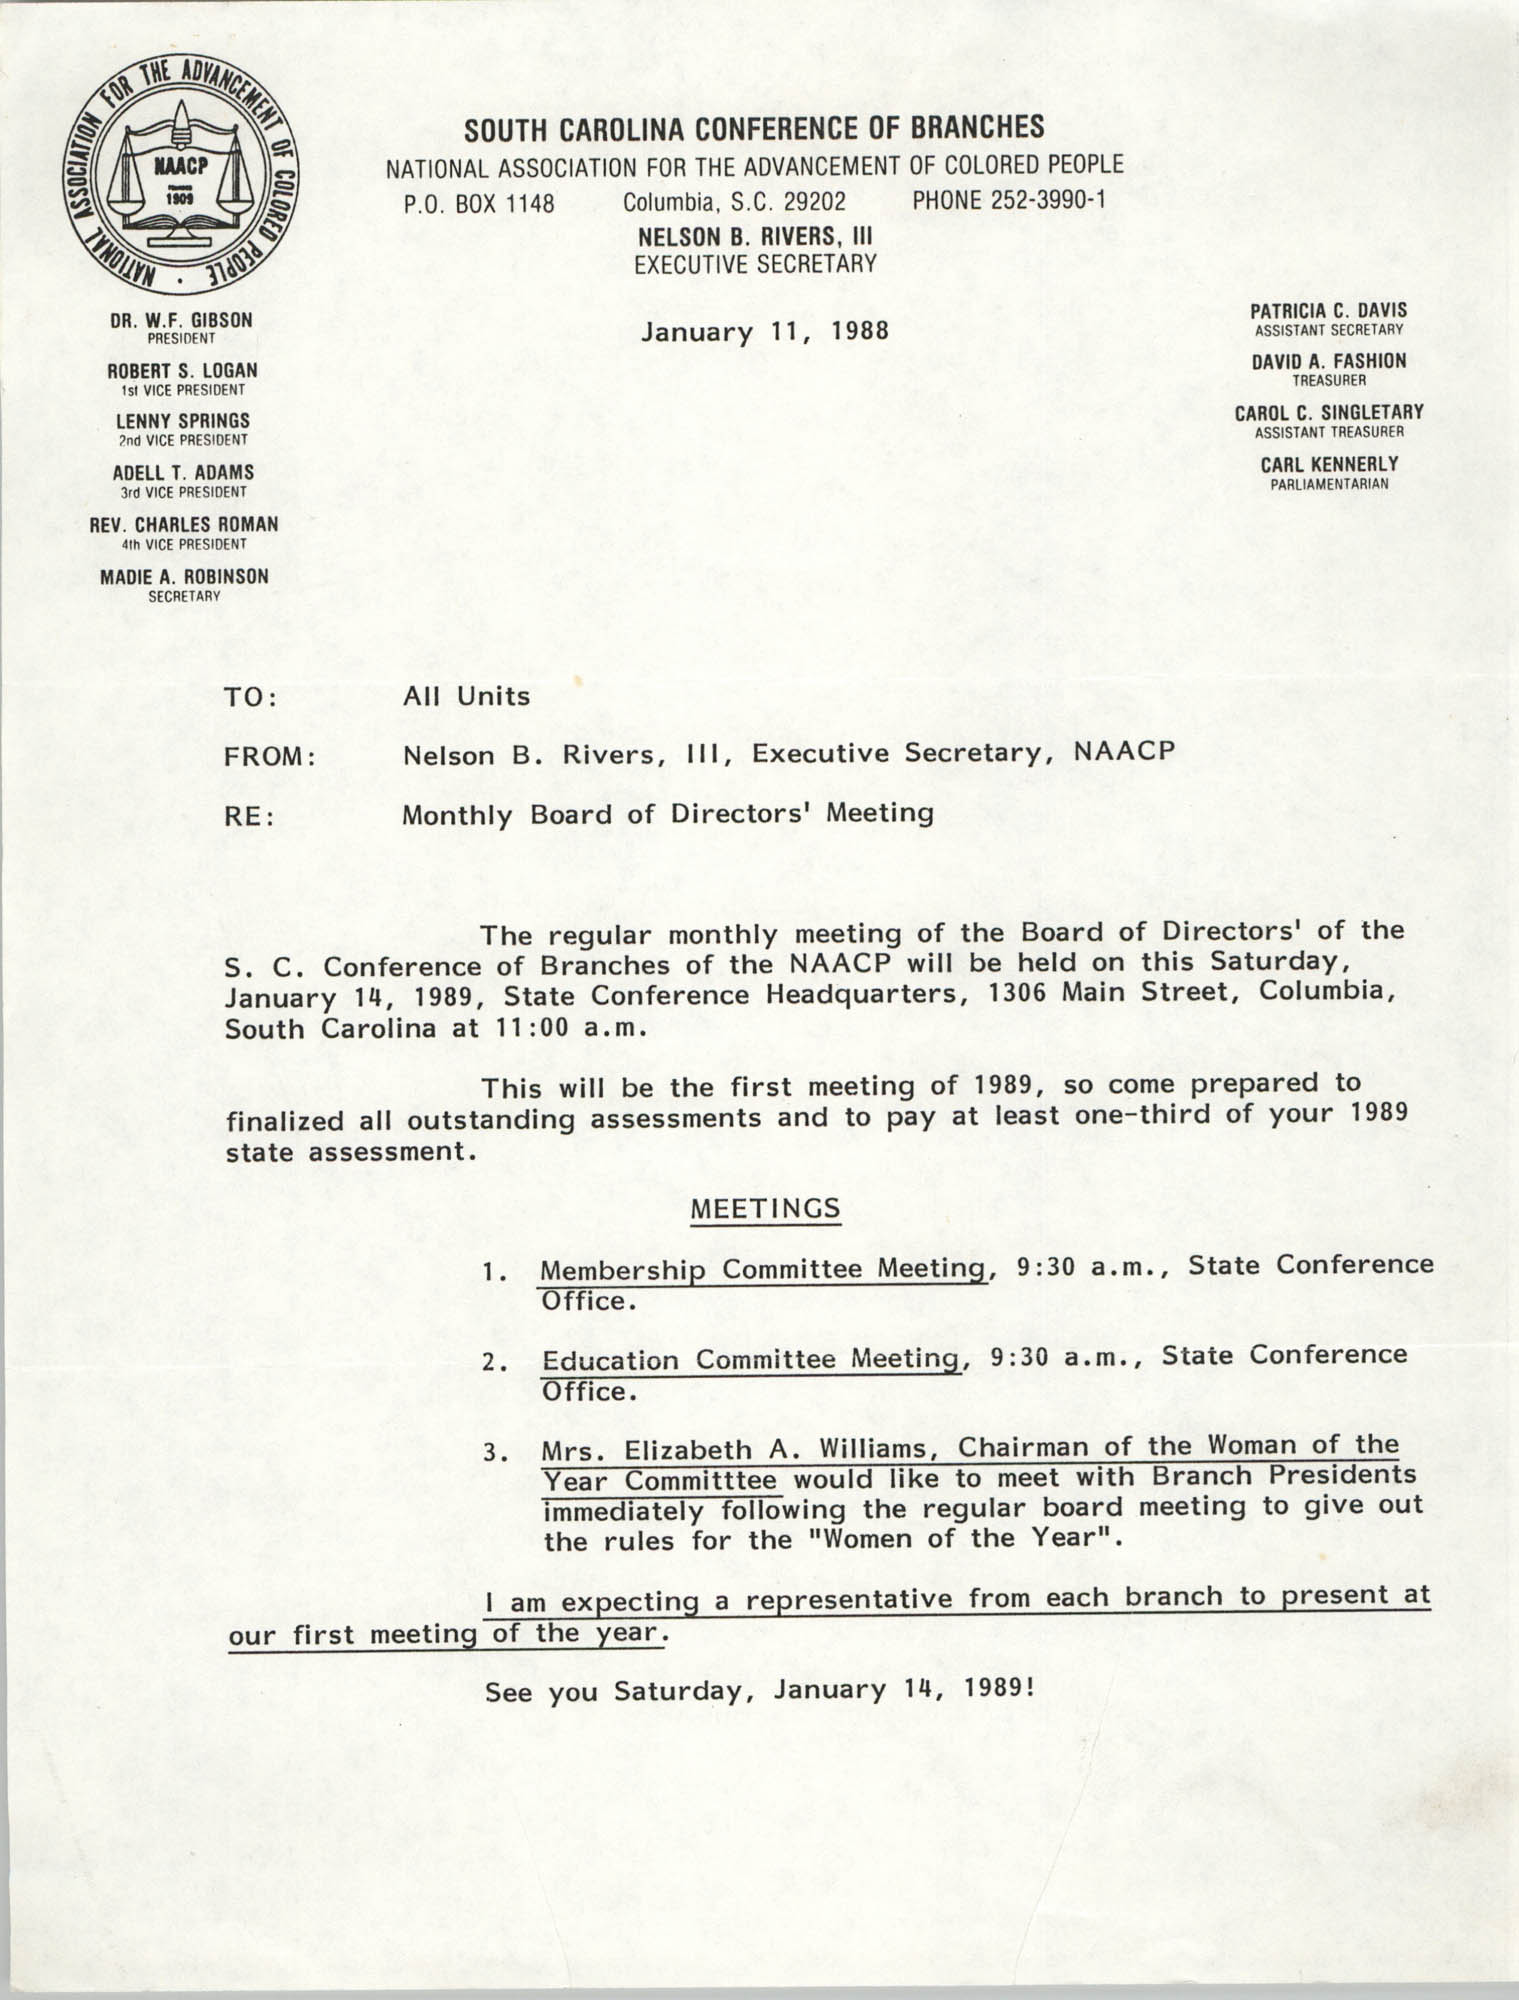 South Carolina Conference of Branches of the NAACP Memorandum, January 11, 1988